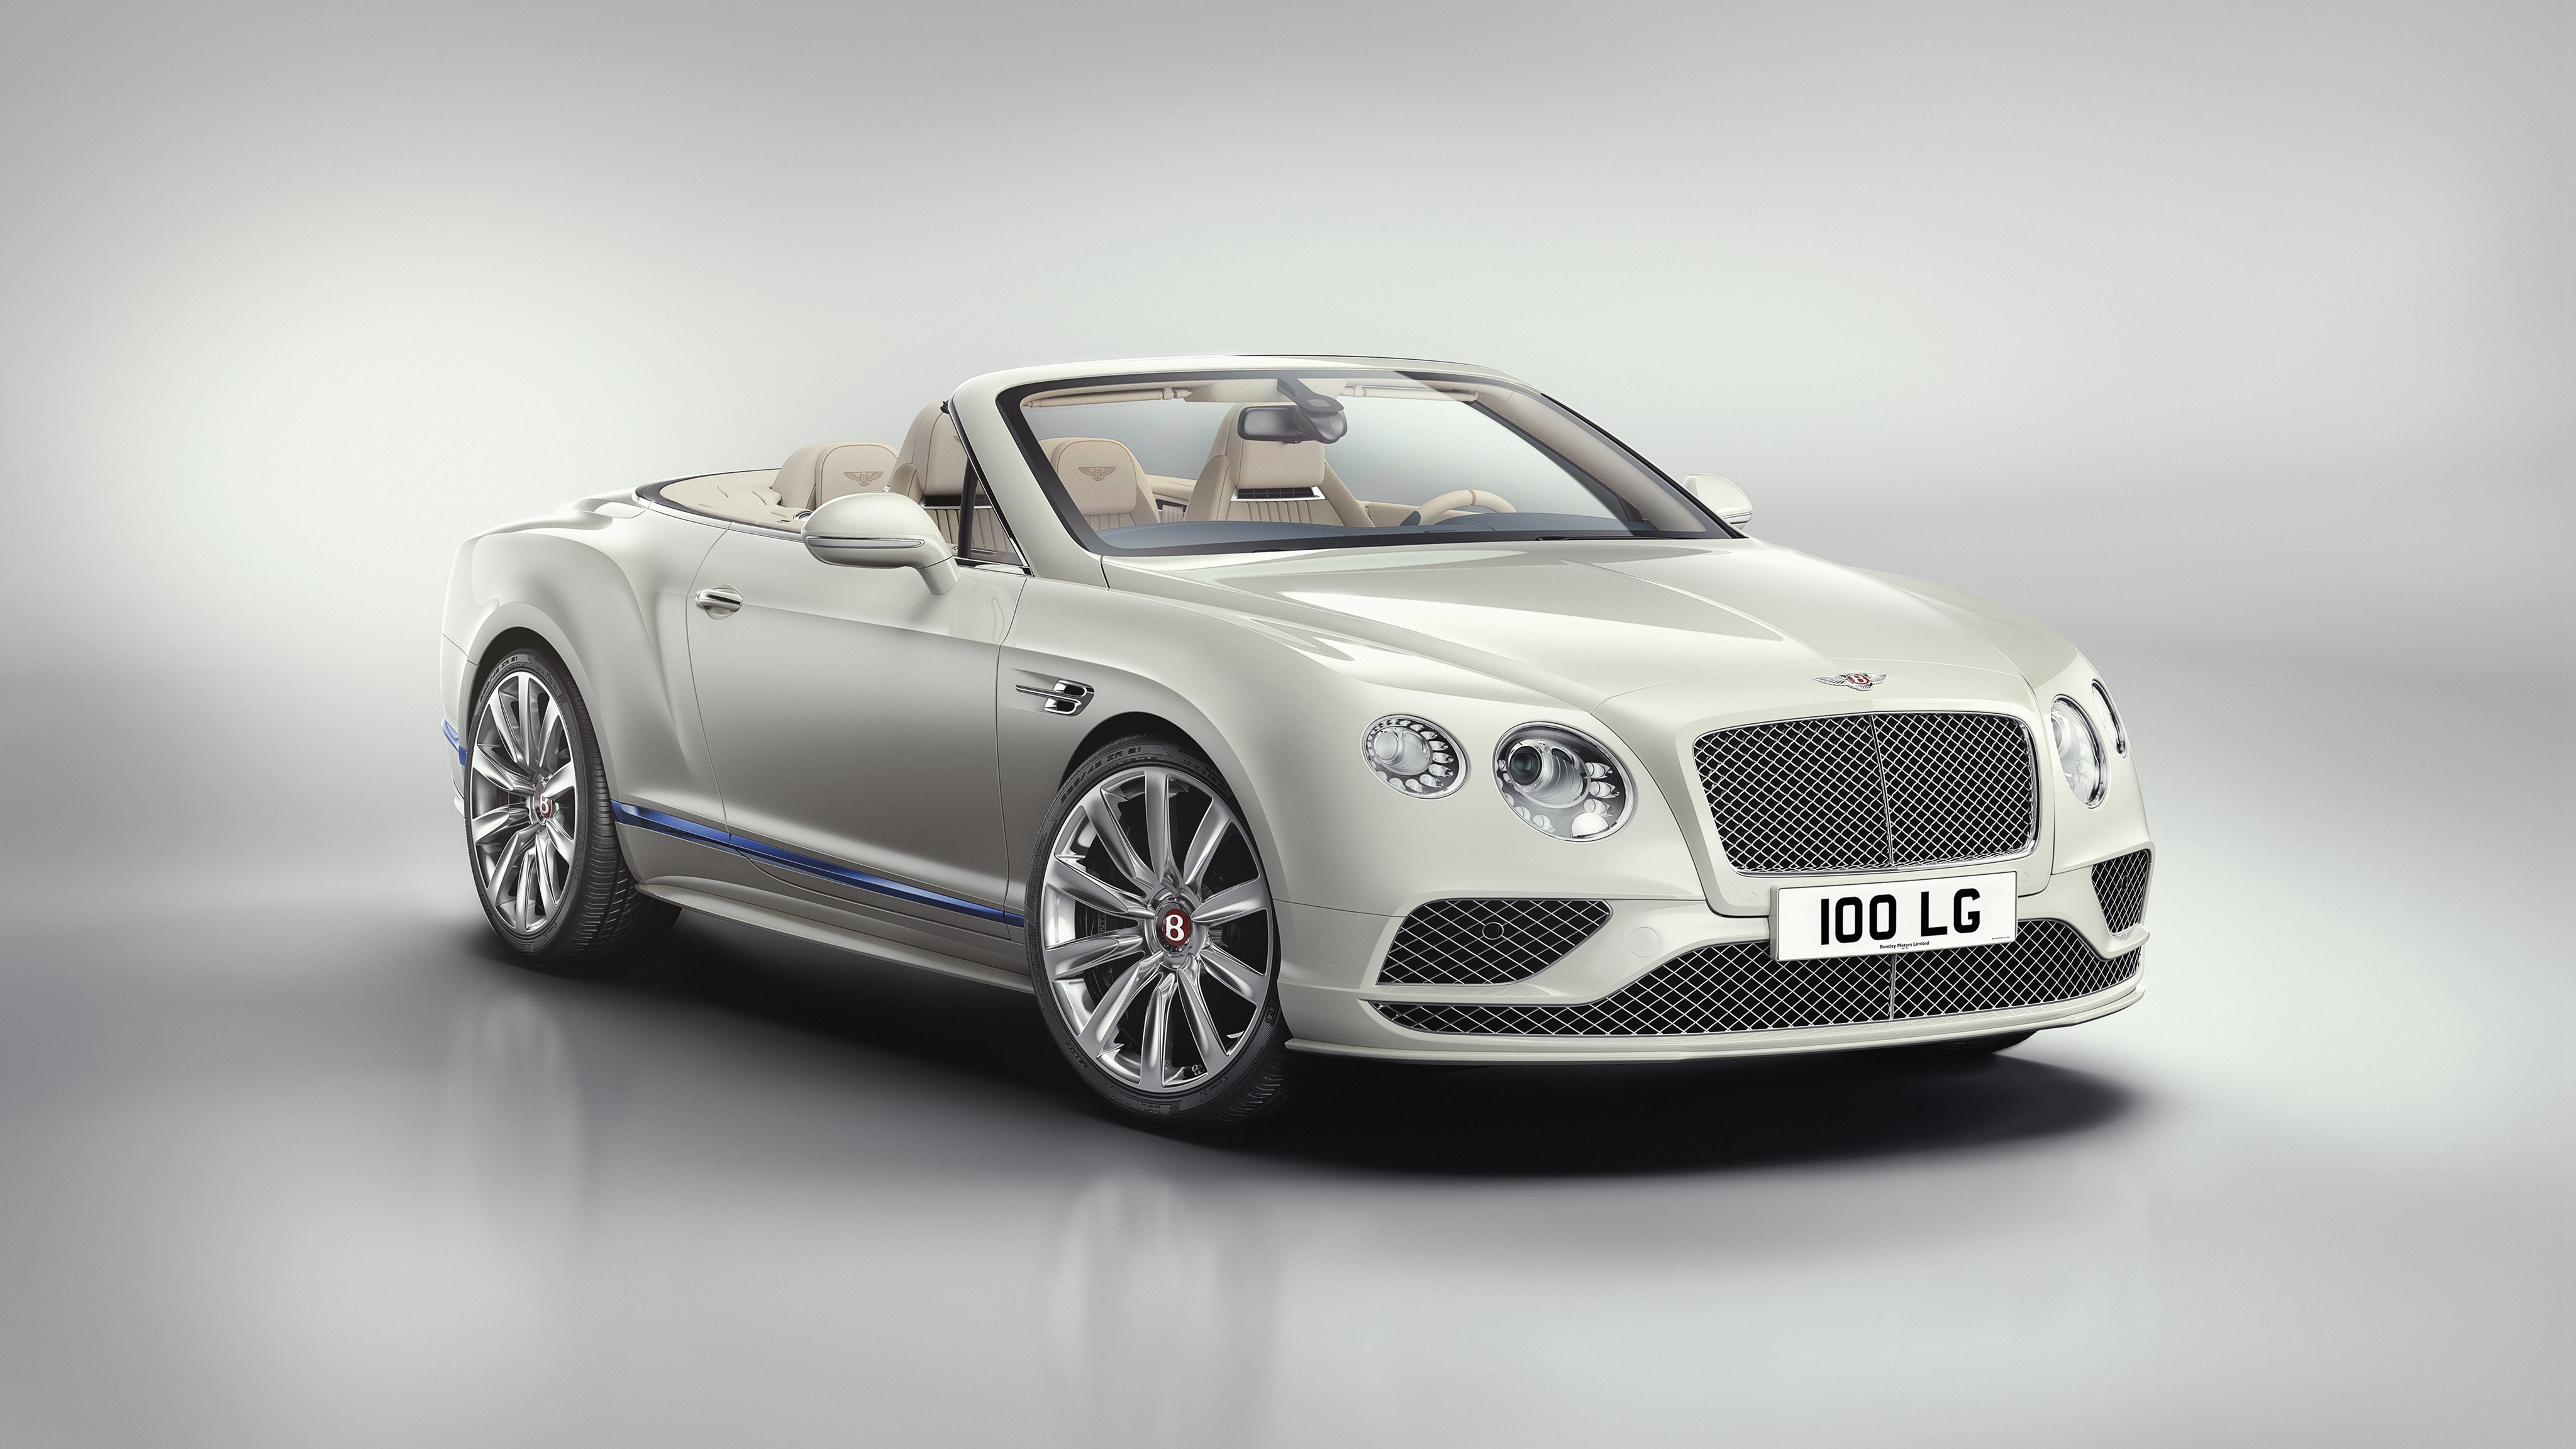 White Bentley Continental Gt 4k Ultra Hd Wallpaper Background Image 4096x2304 Id 857426 Wallpaper Abyss